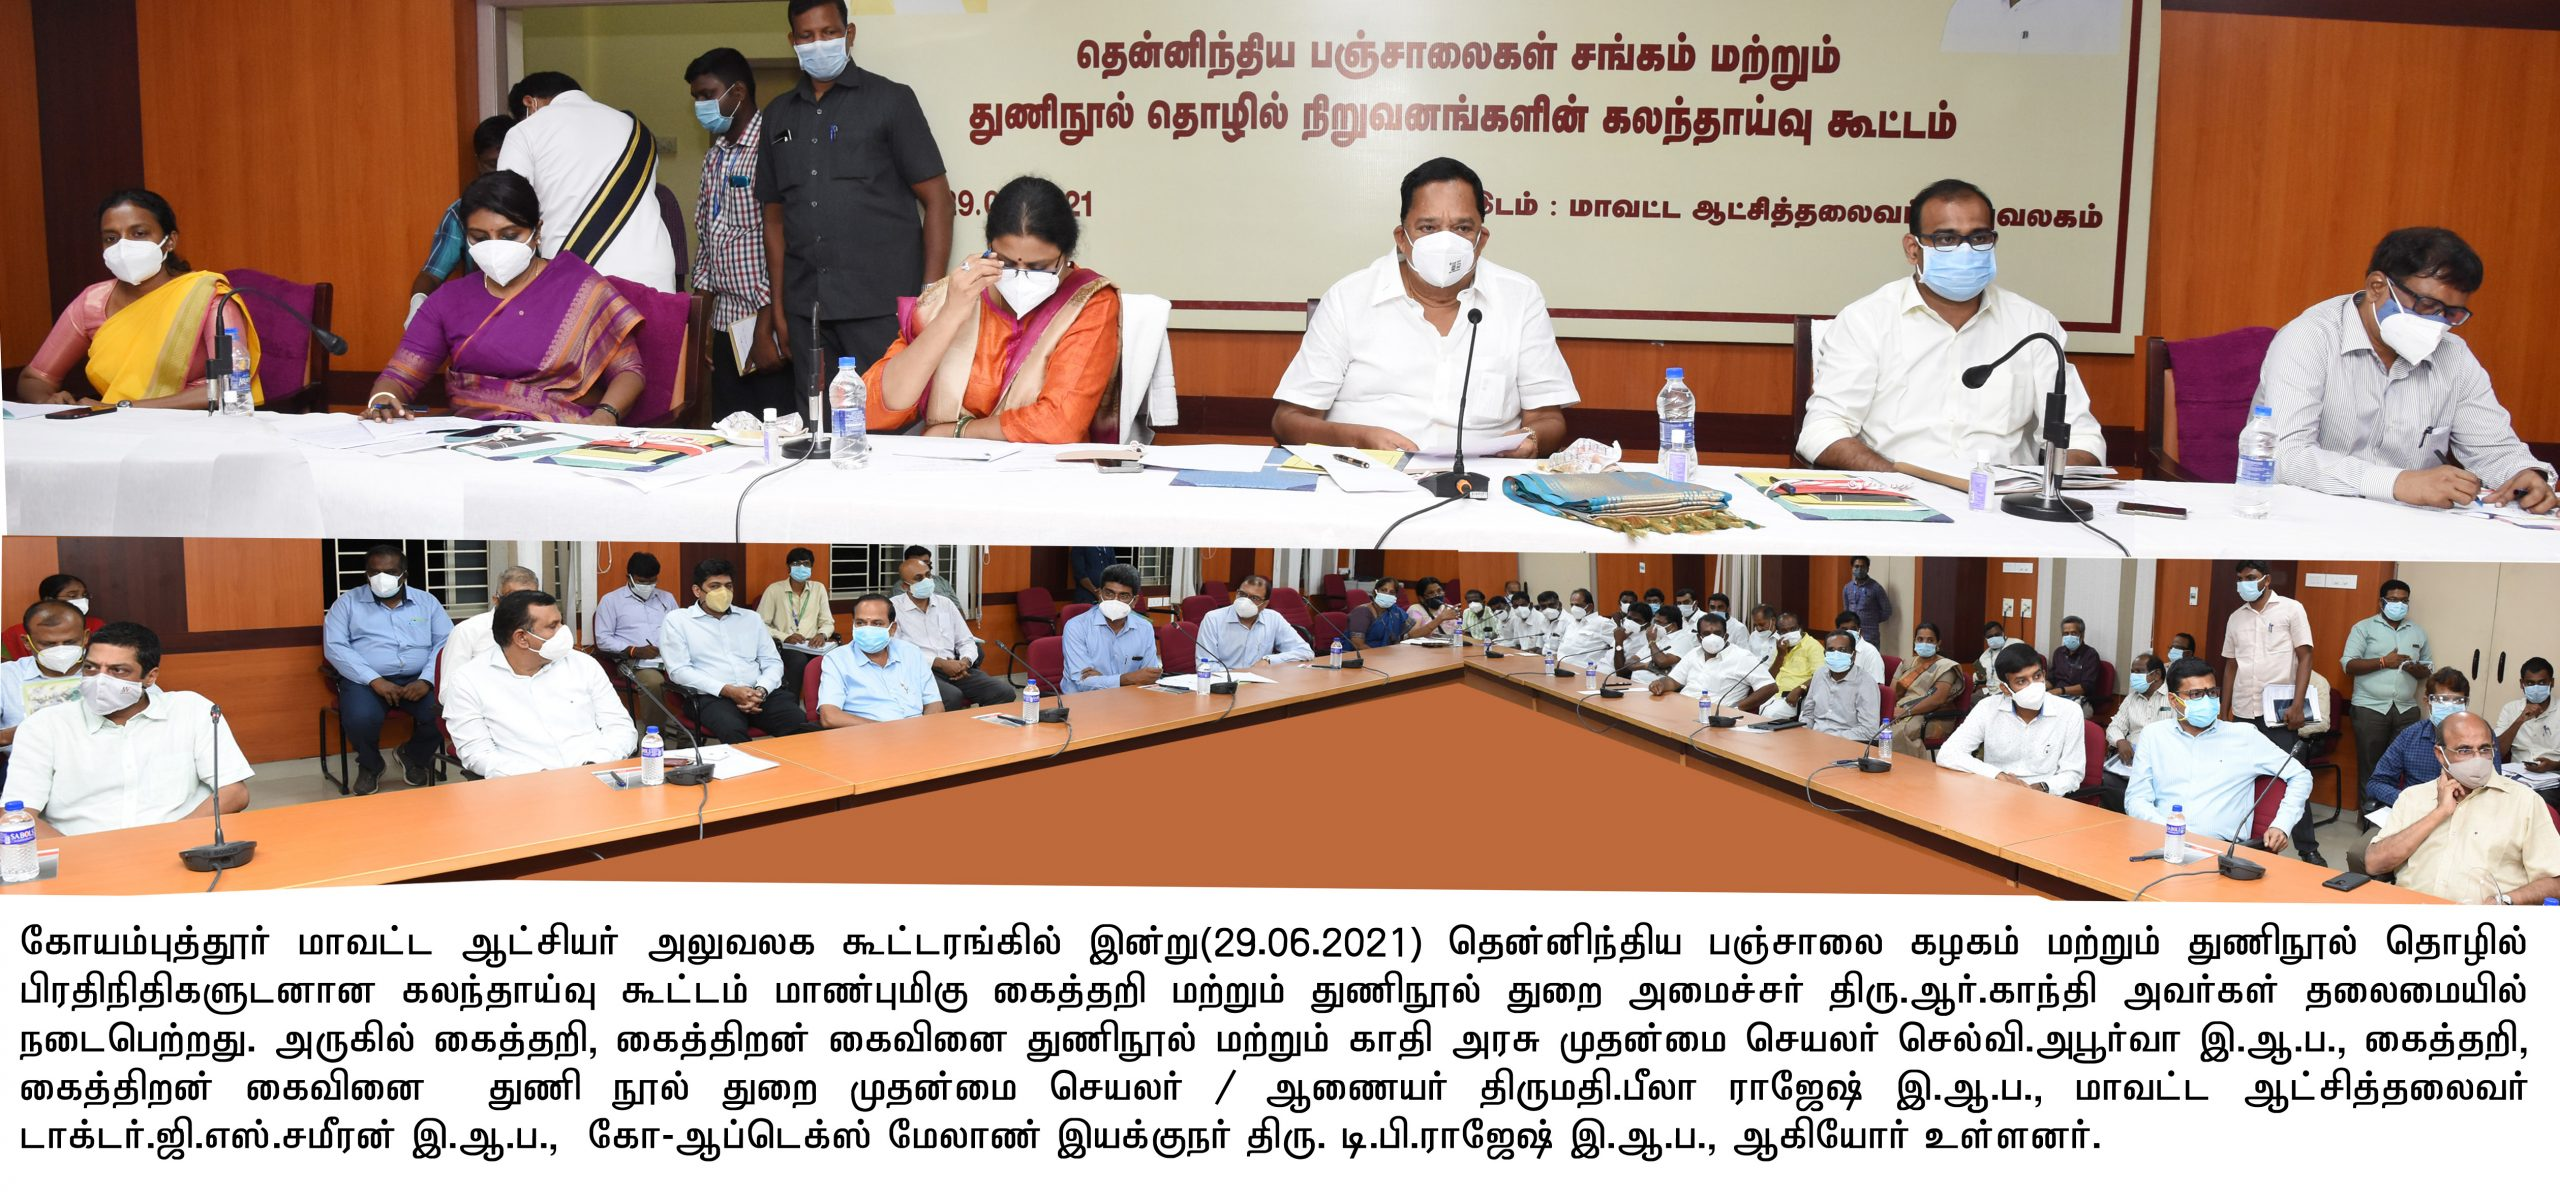 Honble Minister for Handlooms and Textiles conducted Consultative meeting with Textiles Industries Representatives